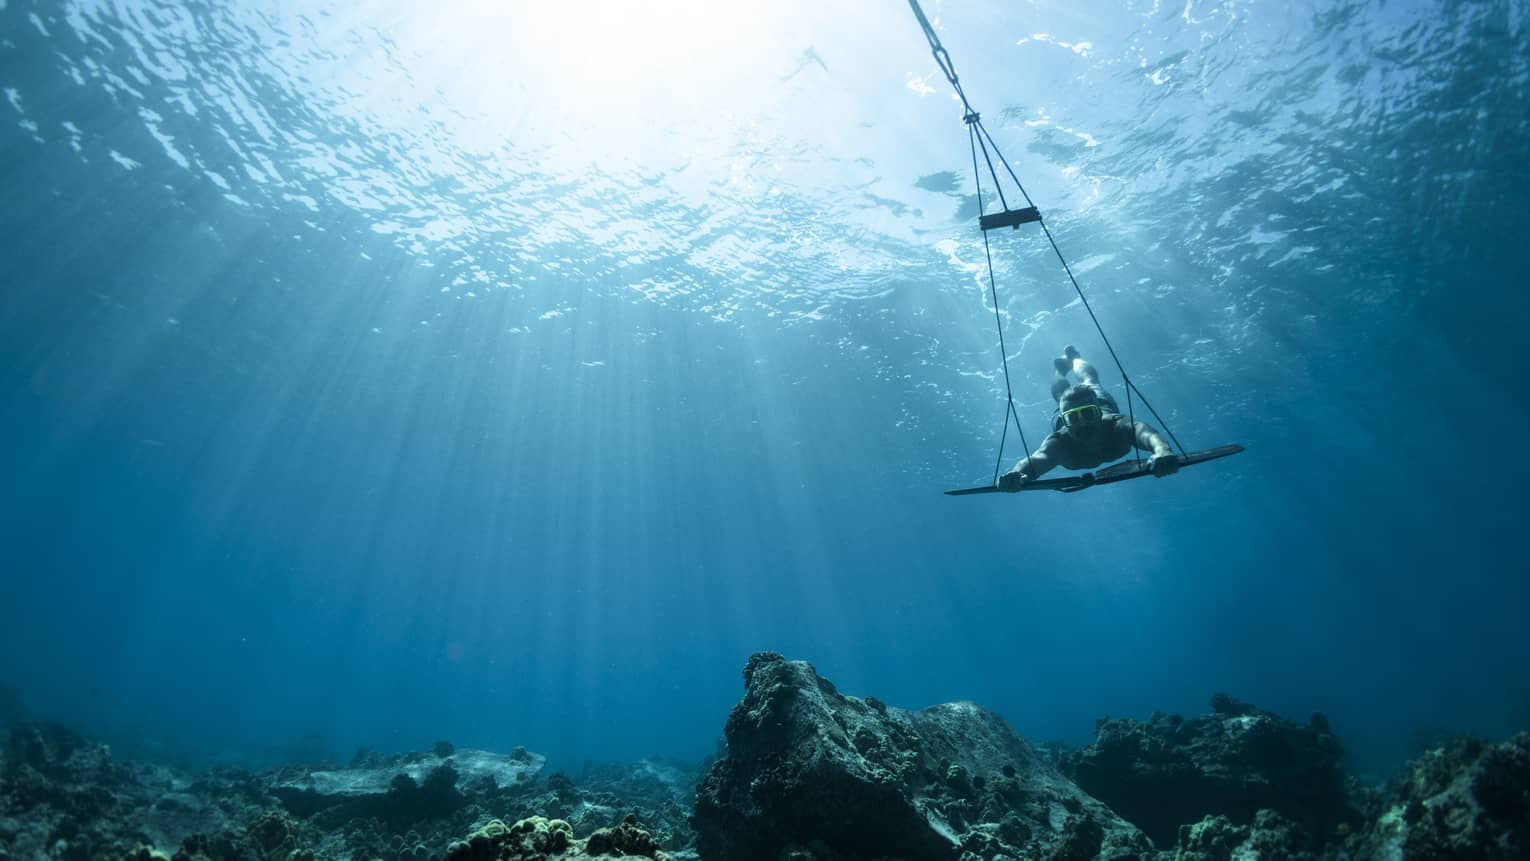 A guest uses a subwing to explore underwater